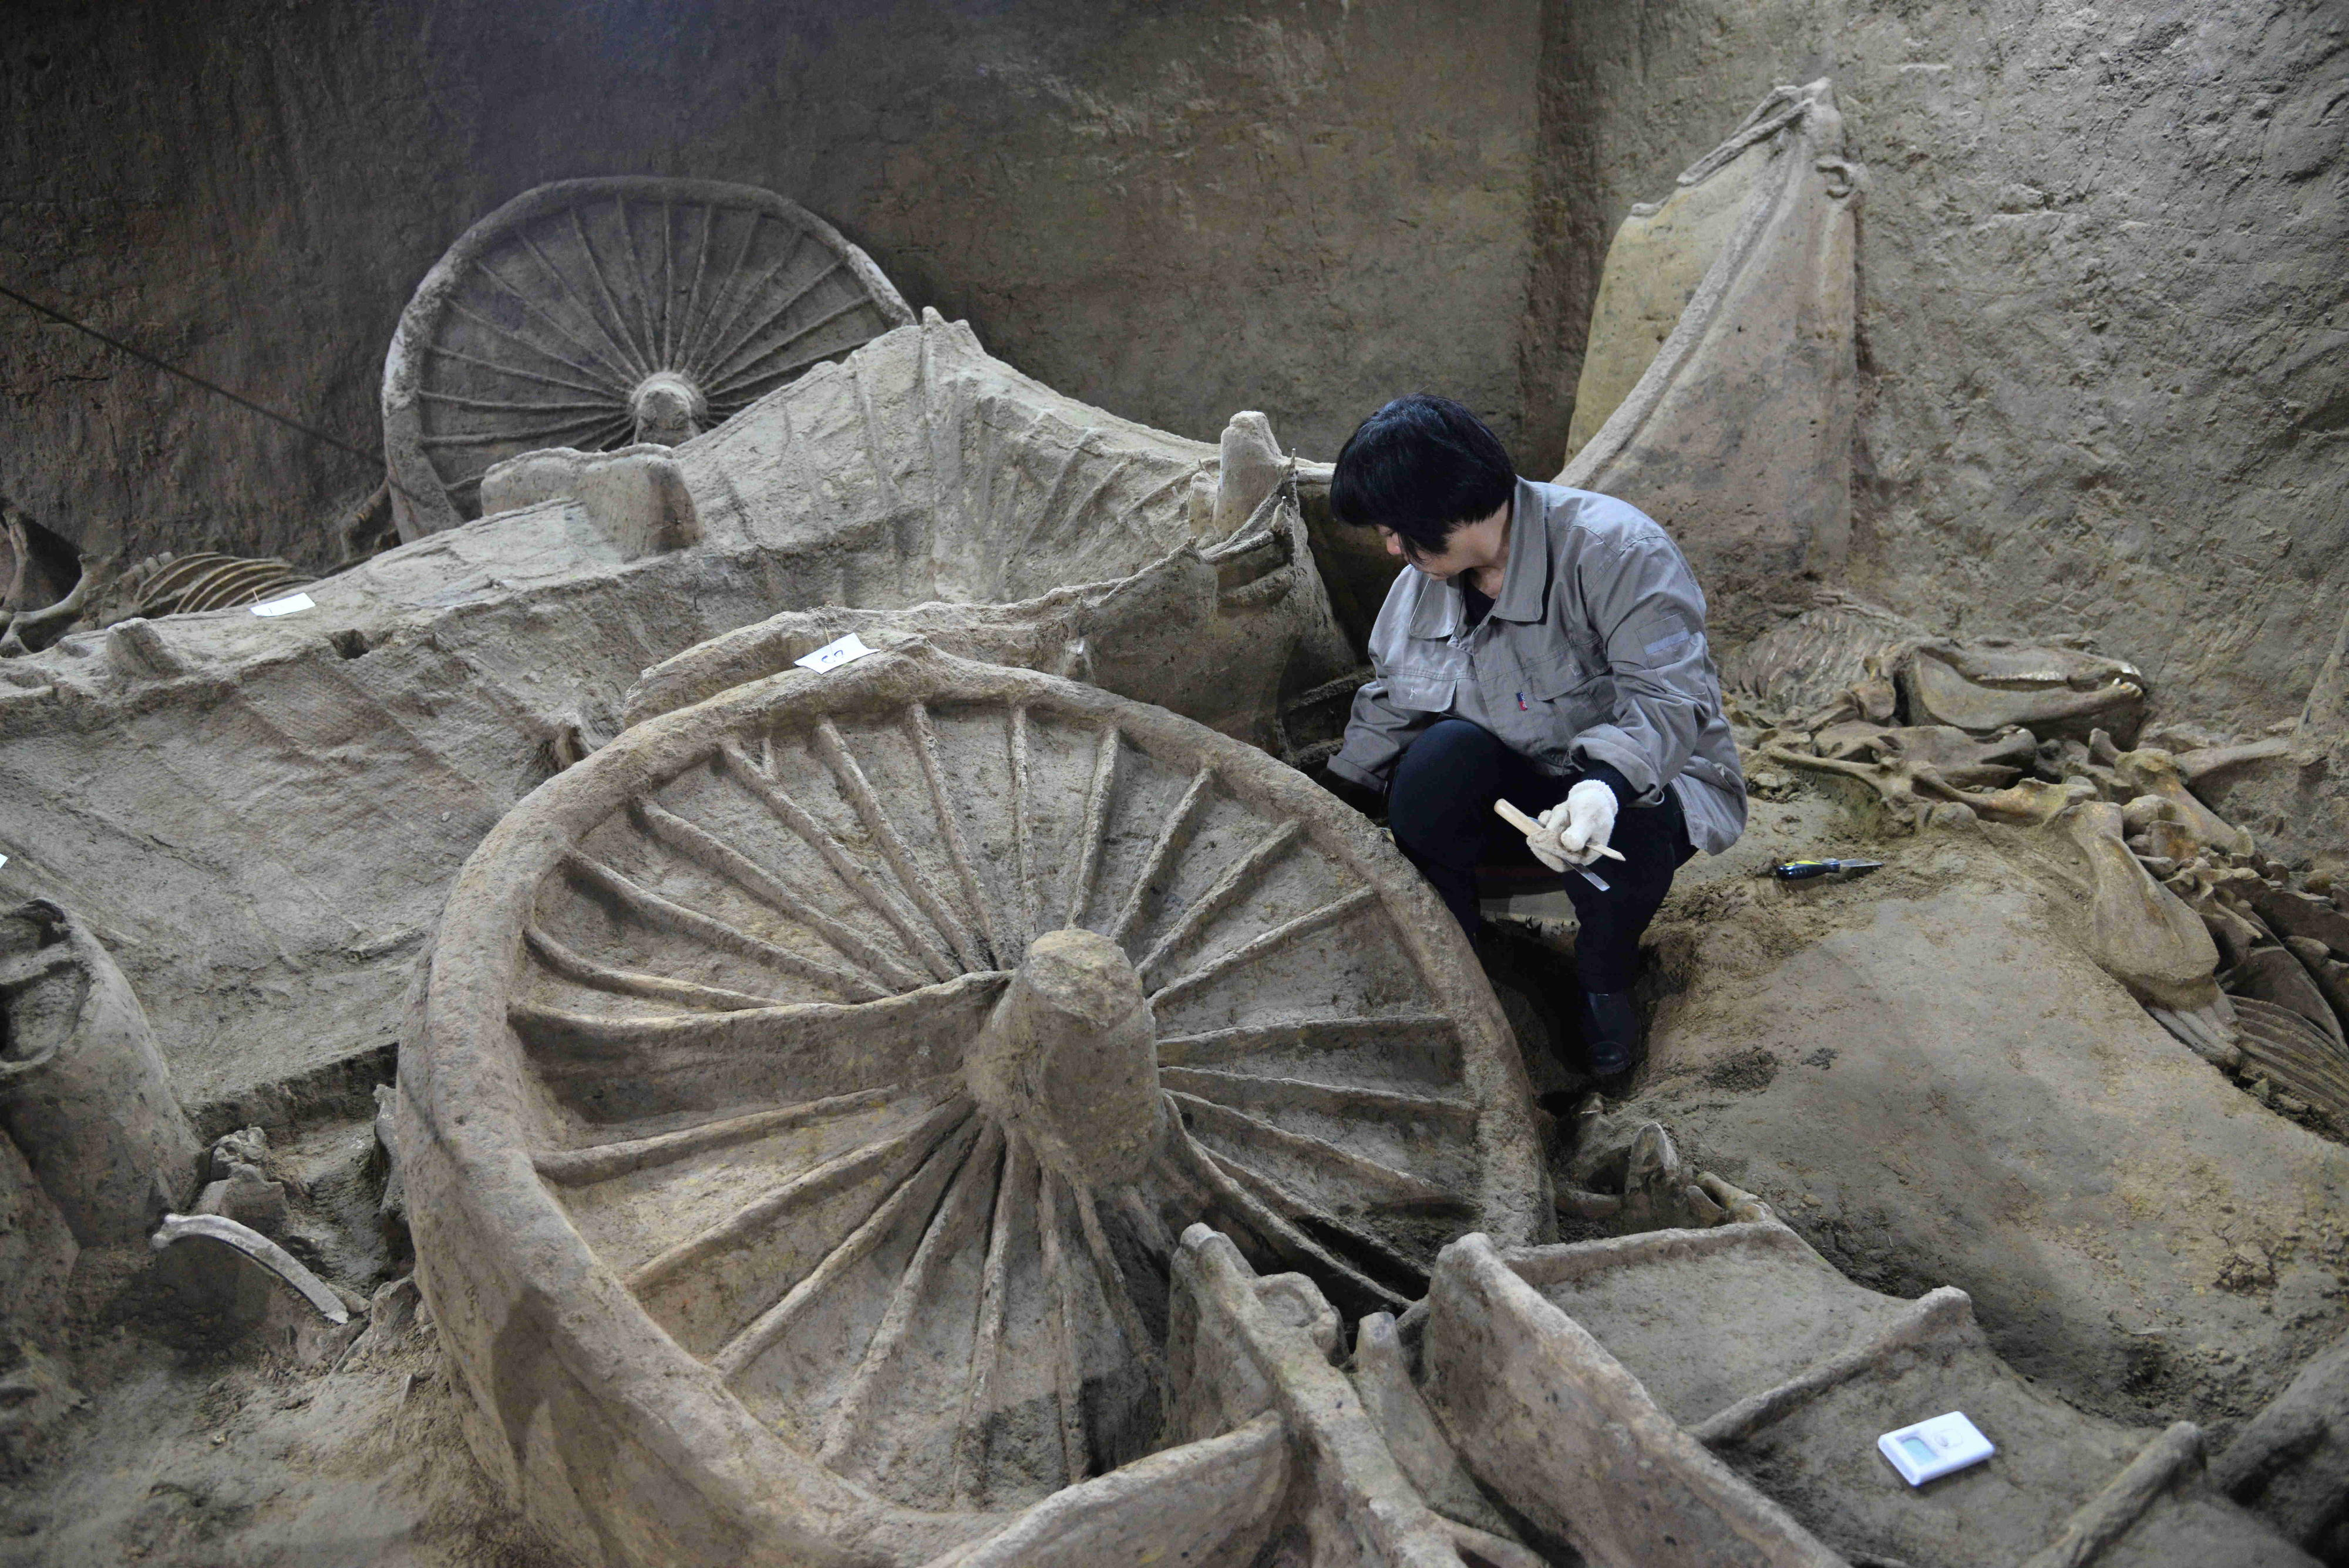 Dig unveils ancient chariots and horse skeletons